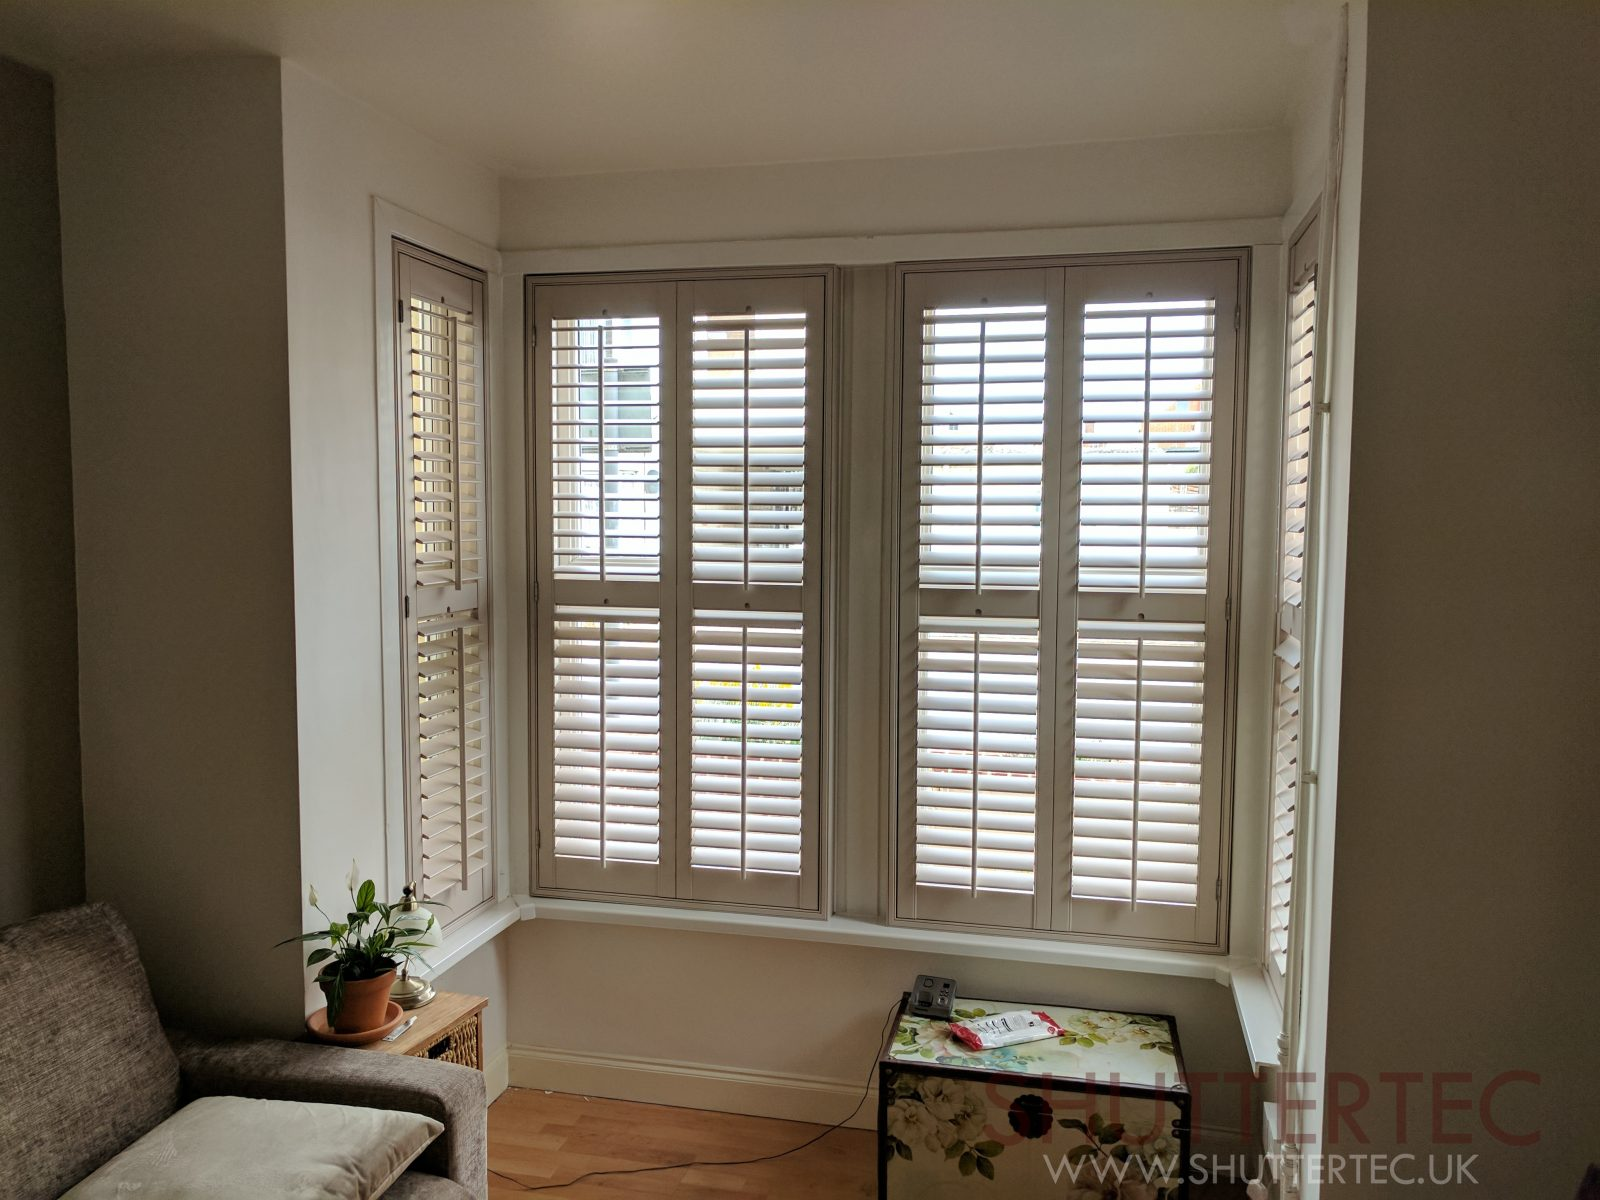 Bespoke Shutters Essex Welcome To Shuttertec Ltd